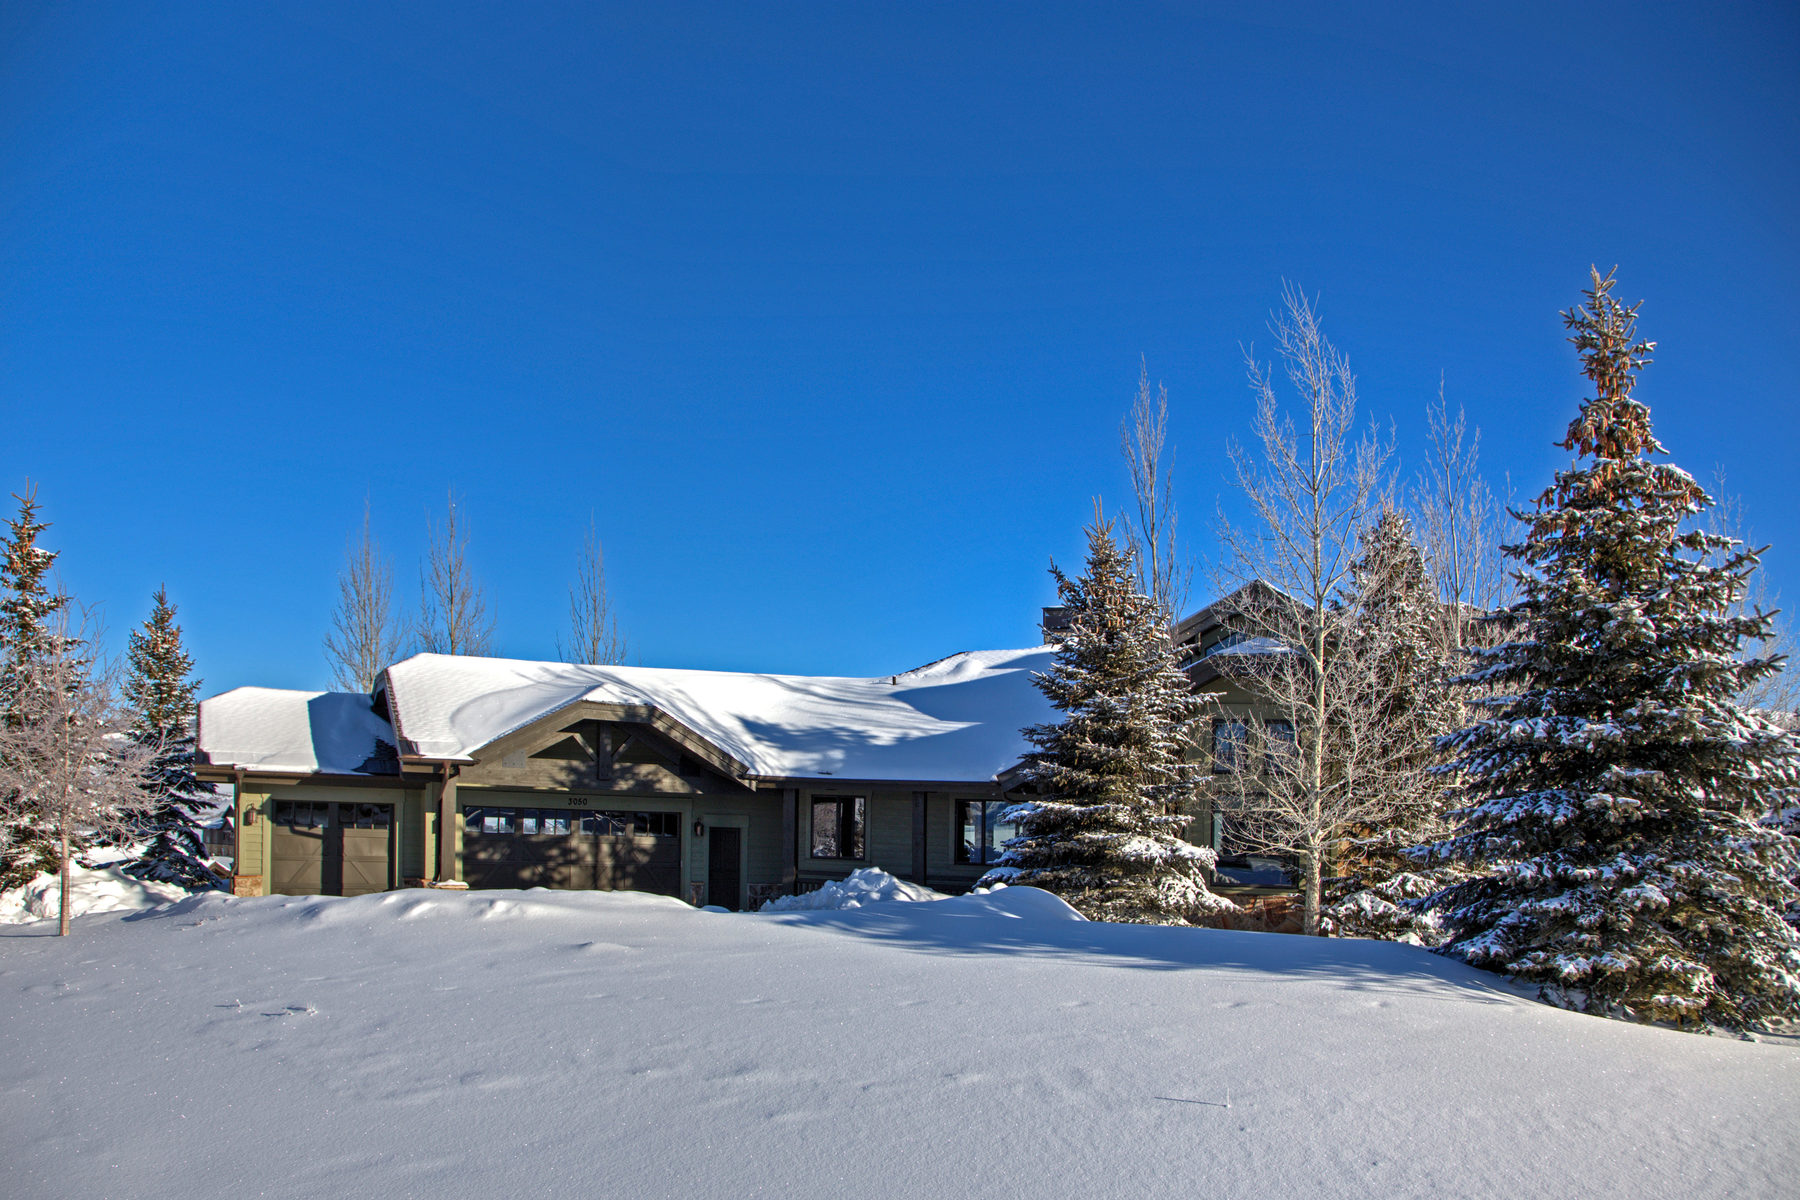 Single Family Home for Sale at Mountain Comfort in Wapiti Canyon, Promontory 3050 E Wapiti Canyon Rd Park City, Utah, 84098 United States